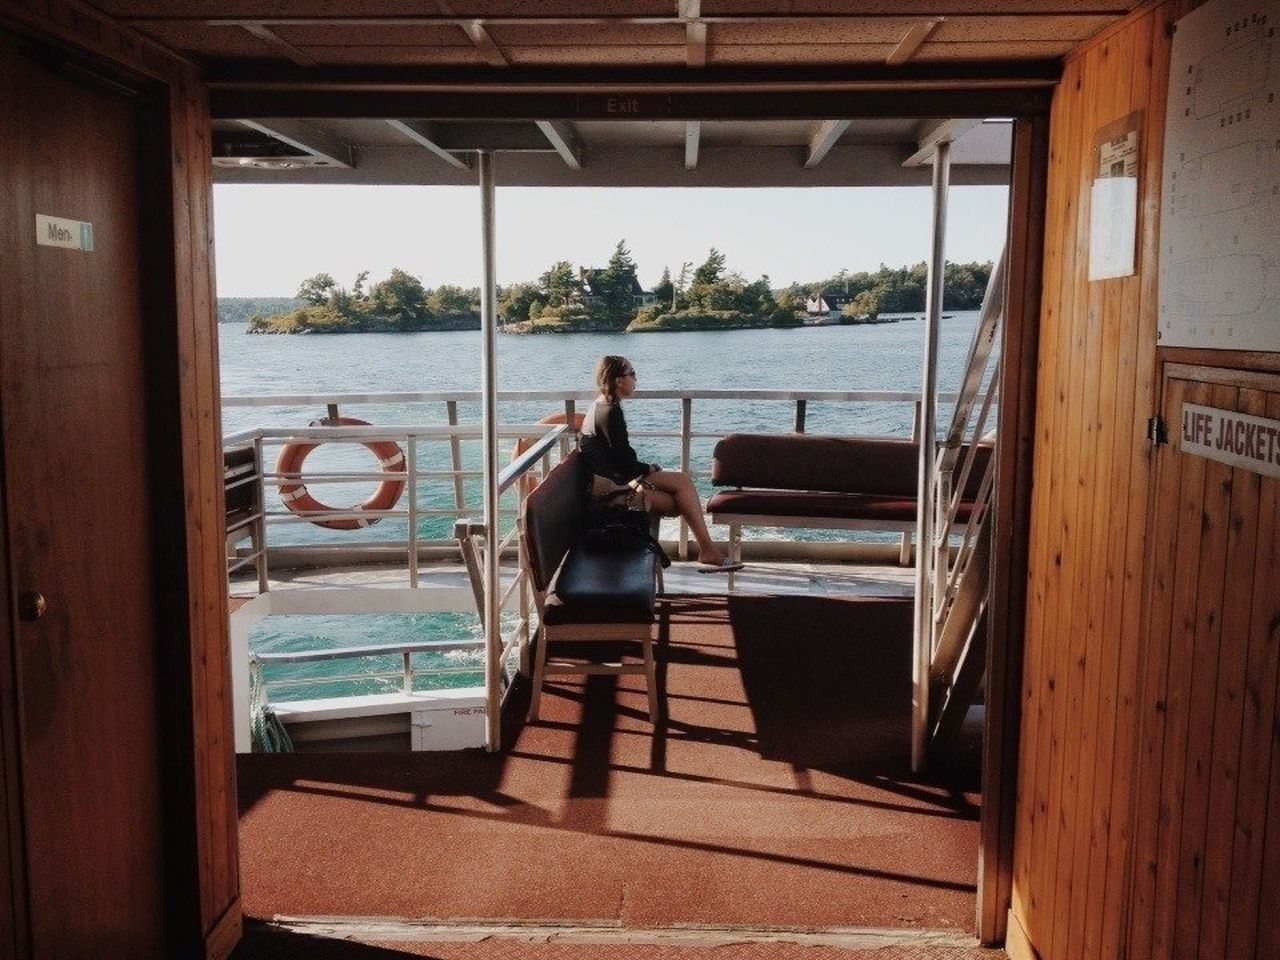 real people, leisure activity, one person, nautical vessel, sea, water, lifestyles, vacations, standing, day, transportation, side view, relaxation, indoors, full length, men, sitting, women, architecture, nature, sailing, boat deck, young adult, sky, adult, adults only, people